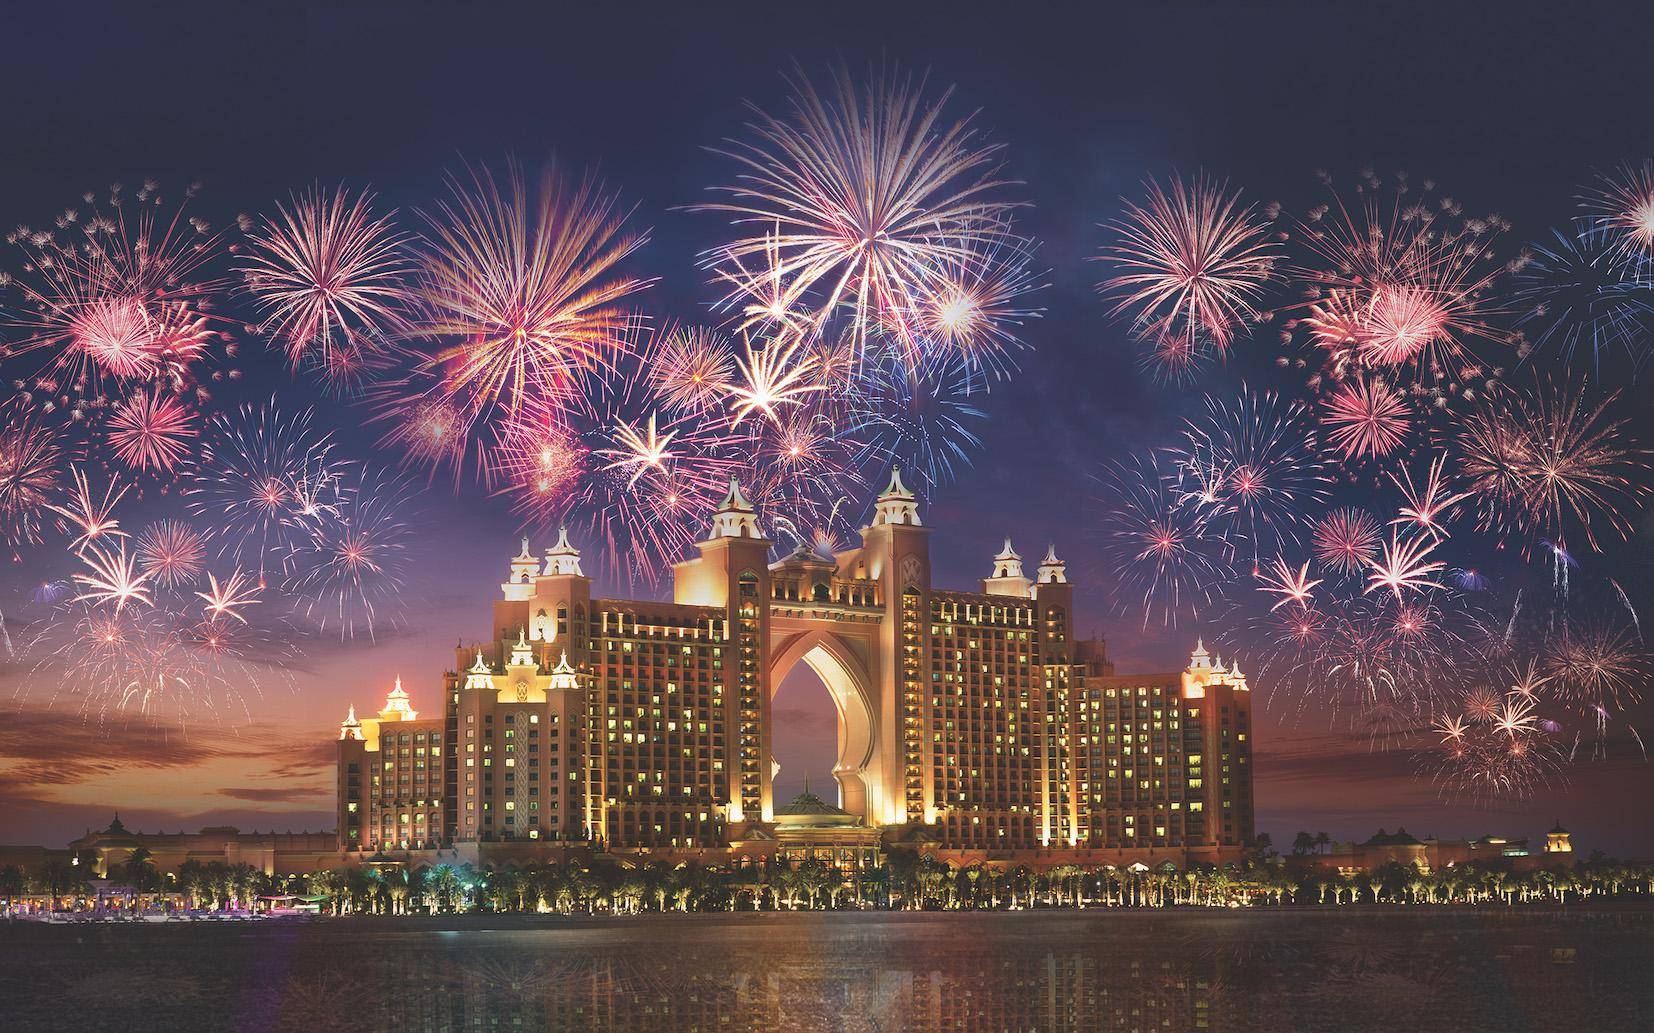 Dubai: Fireworks on July 1 as DSS opens for new edition